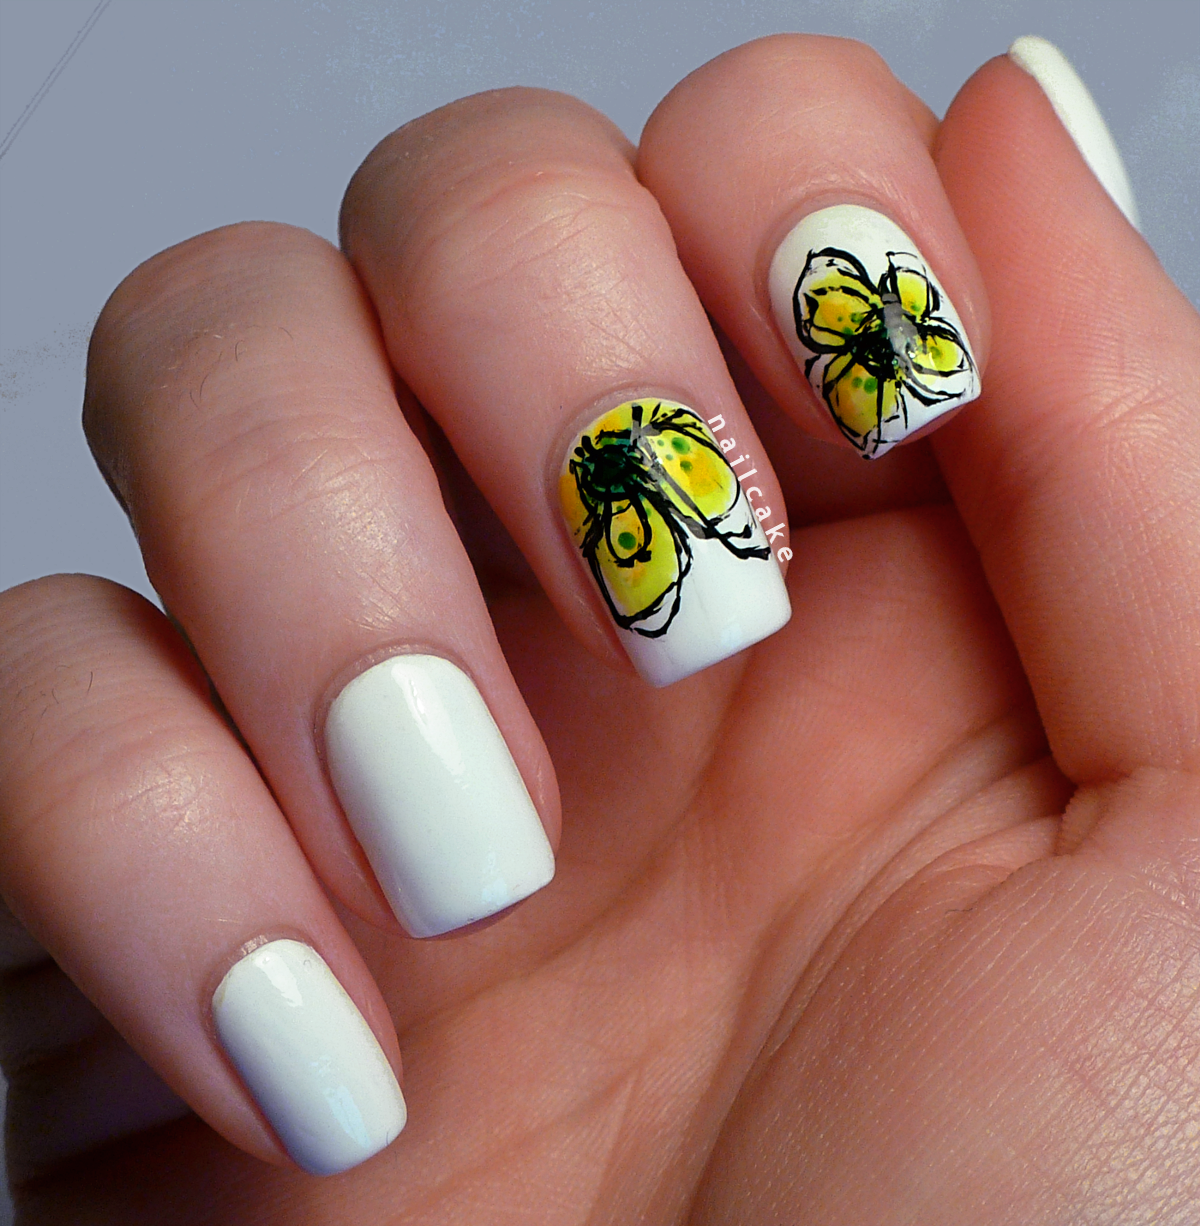 nail art   Hello! Rocking some \'art-inspired\' nail art right now ...